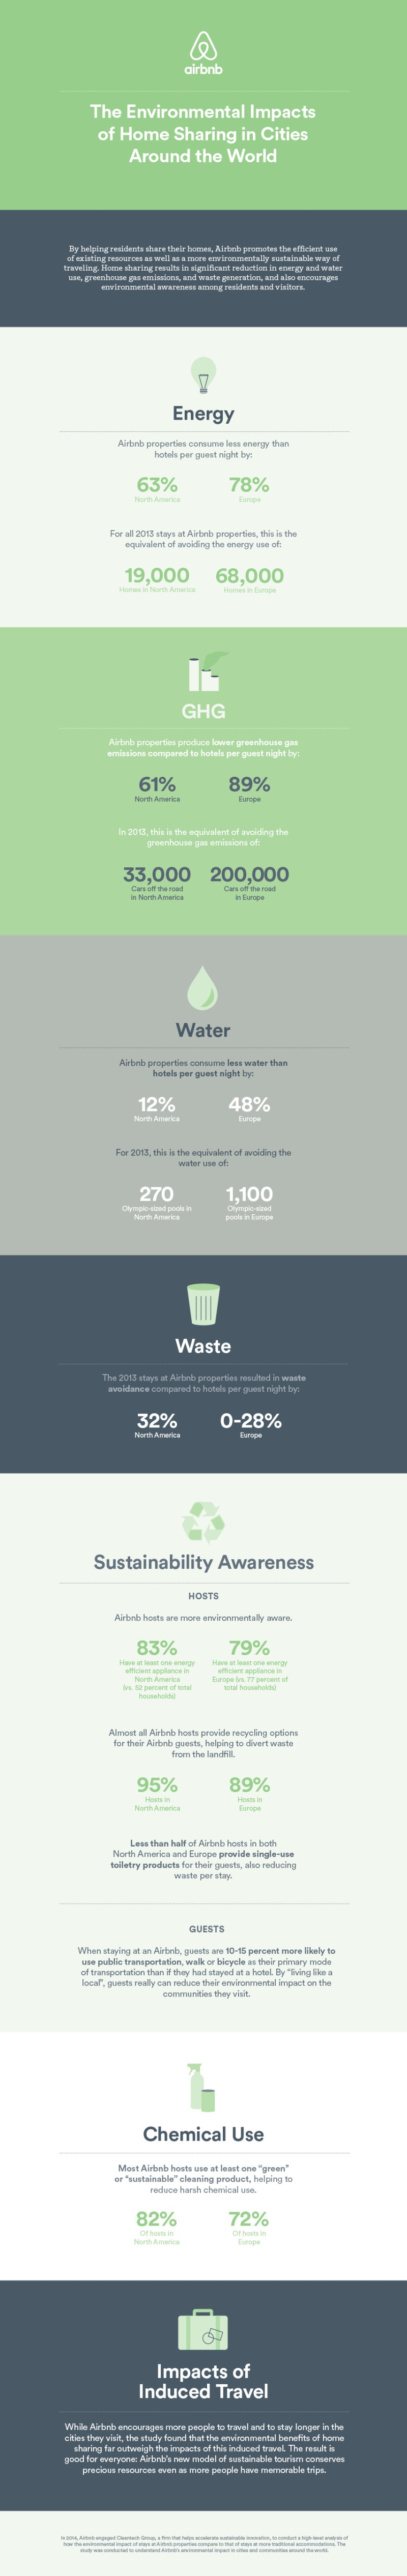 Environmental Impacts of home sharing - Airbnb